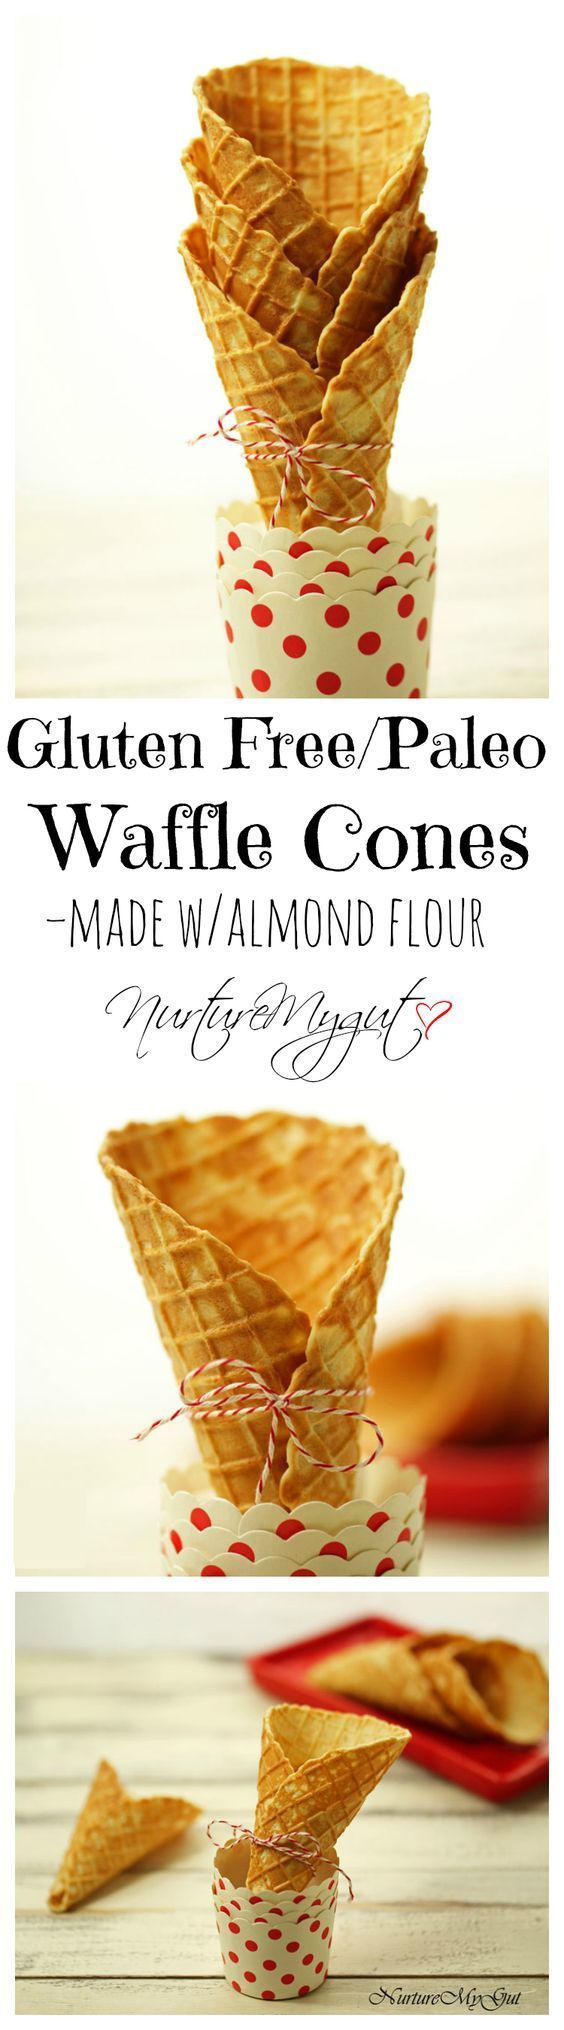 ... Pinterest | Gluten free desserts, Gluten free and Gluten free brownies